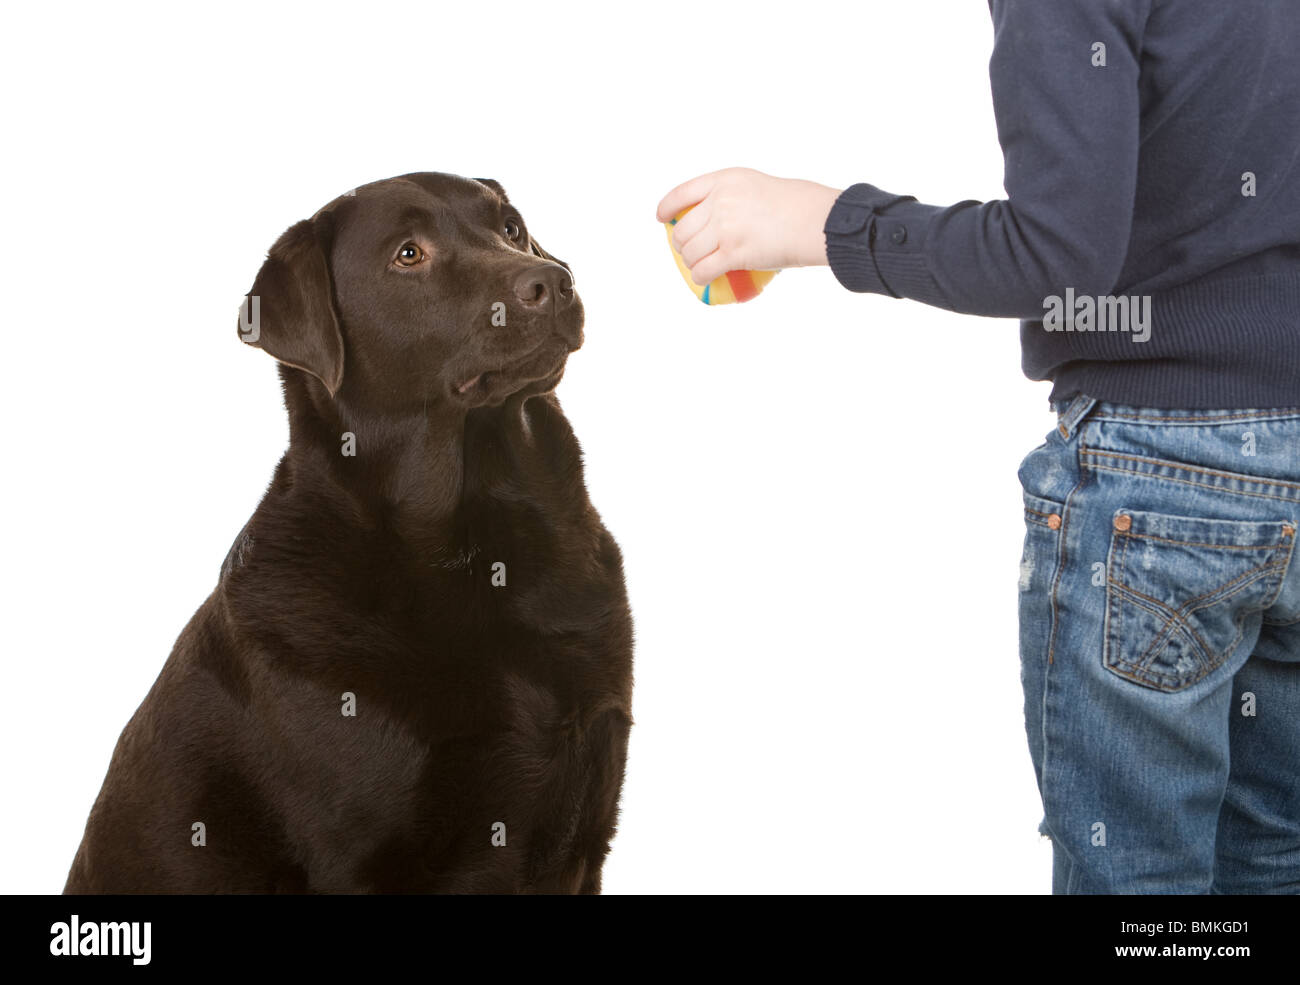 Isolated Shot of a Young Child Training a Chocolate Labrador - Stock Image